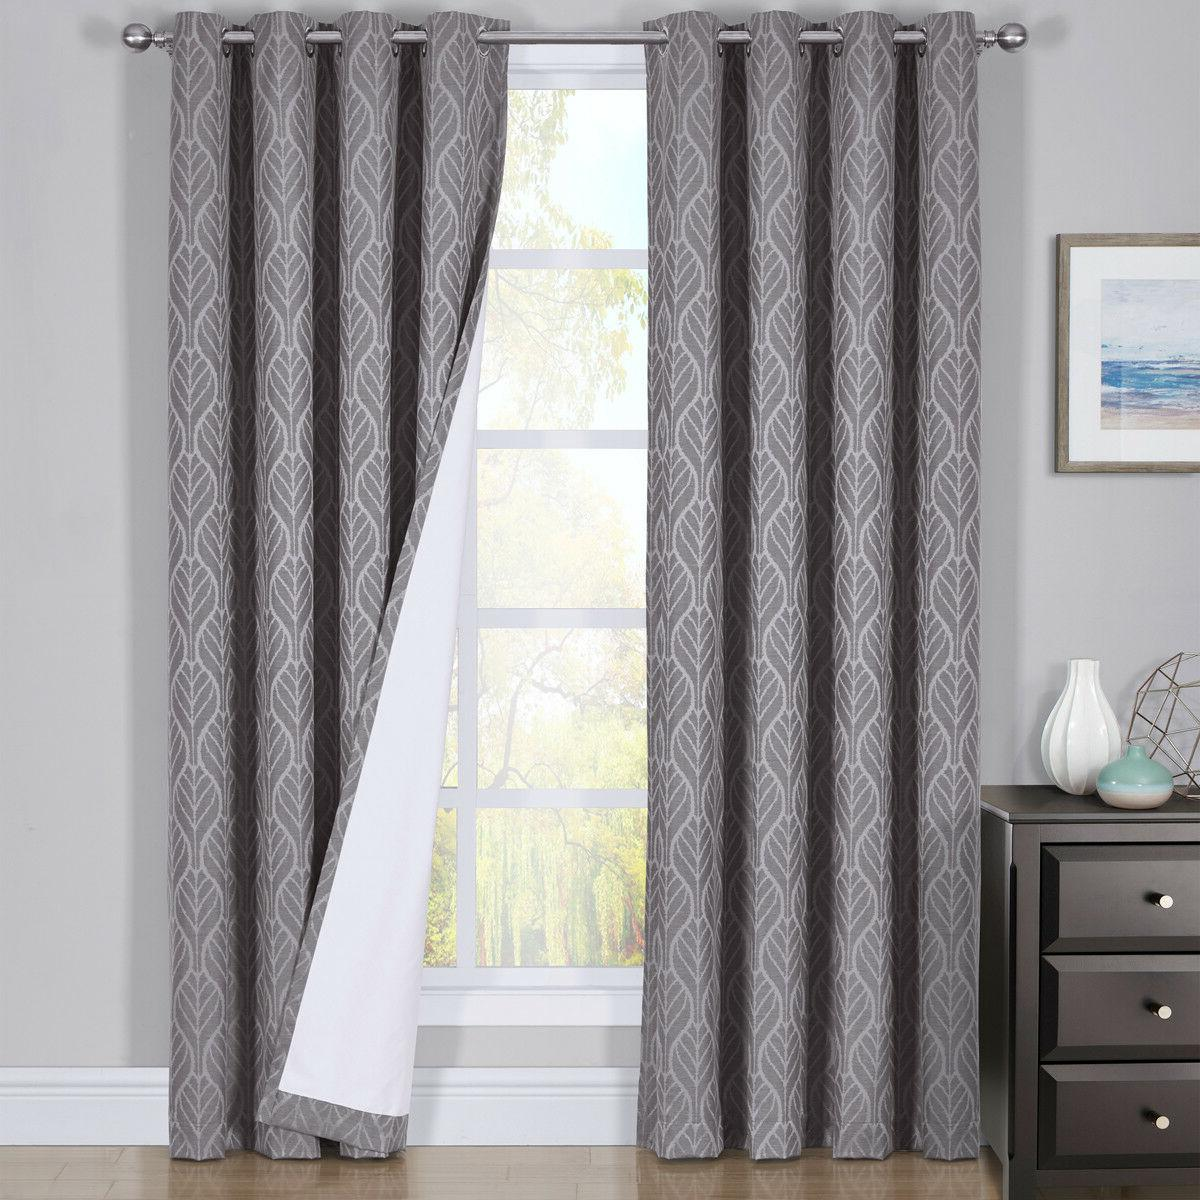 Hilton Blackout Curtains Panels Jacquard Insulated